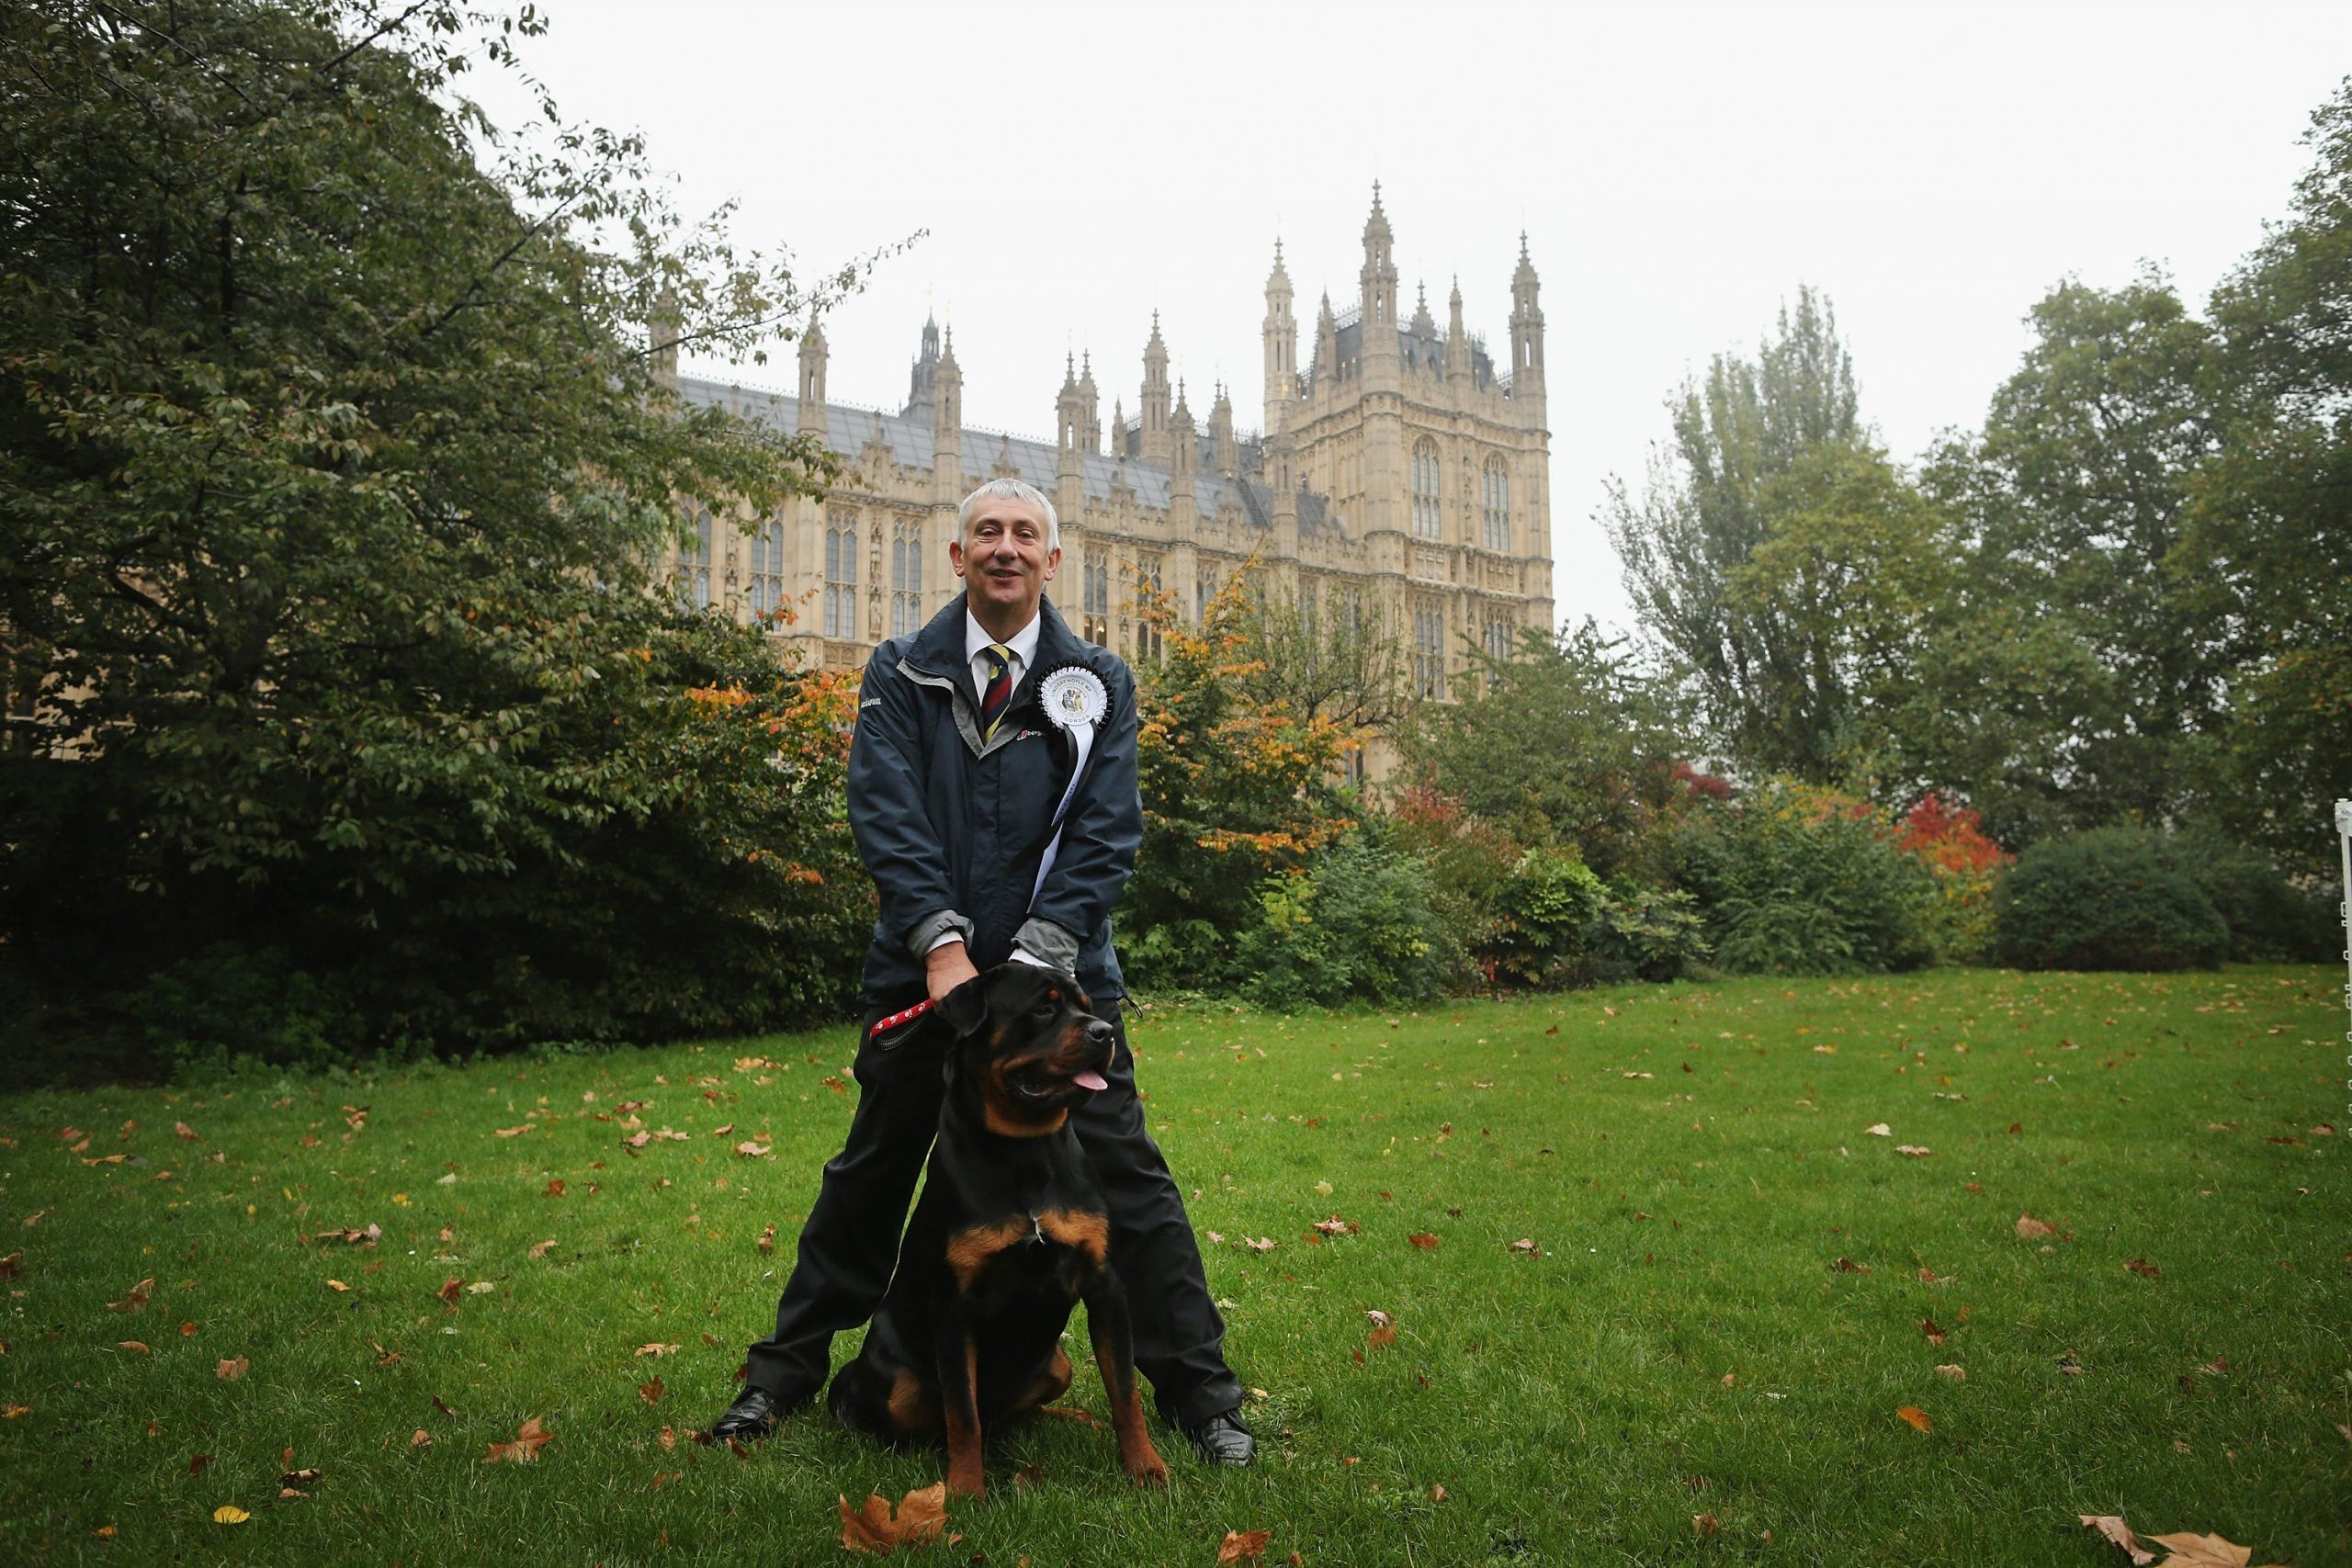 Commons Confidential: The taming of the Rottweiler